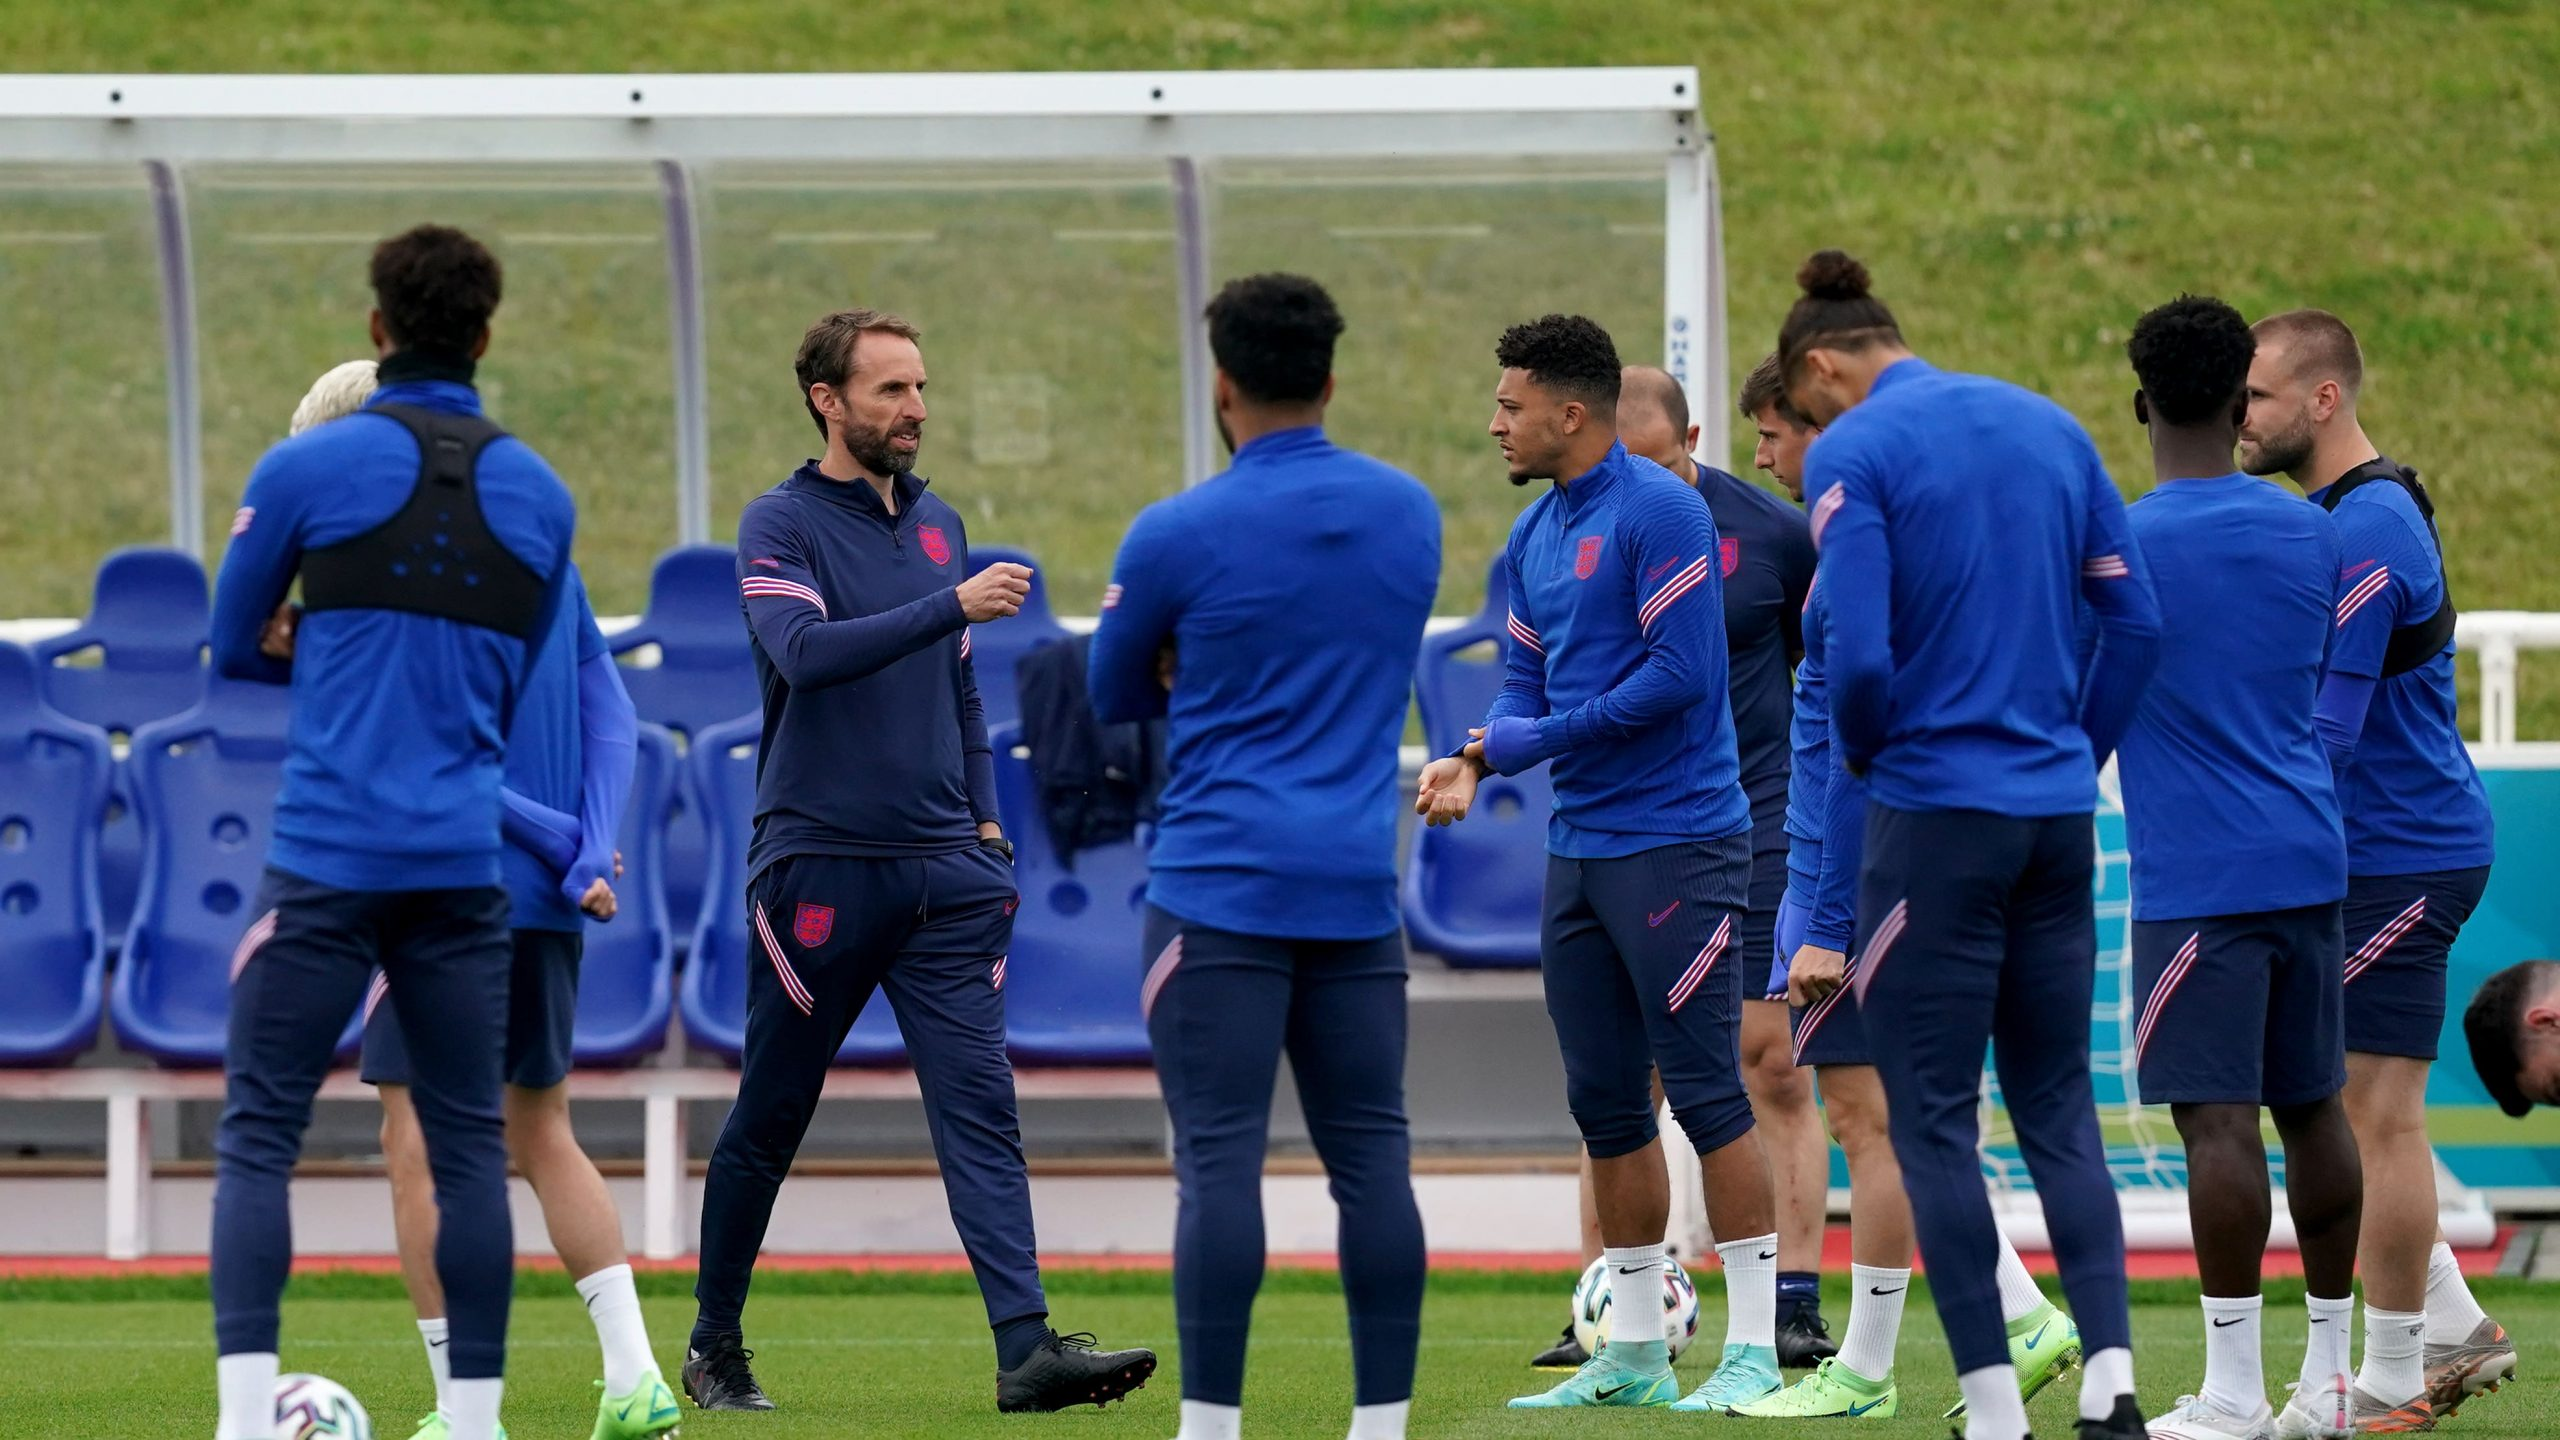 Read more about the article Southgate's socially conscious England squad sets an example for British society